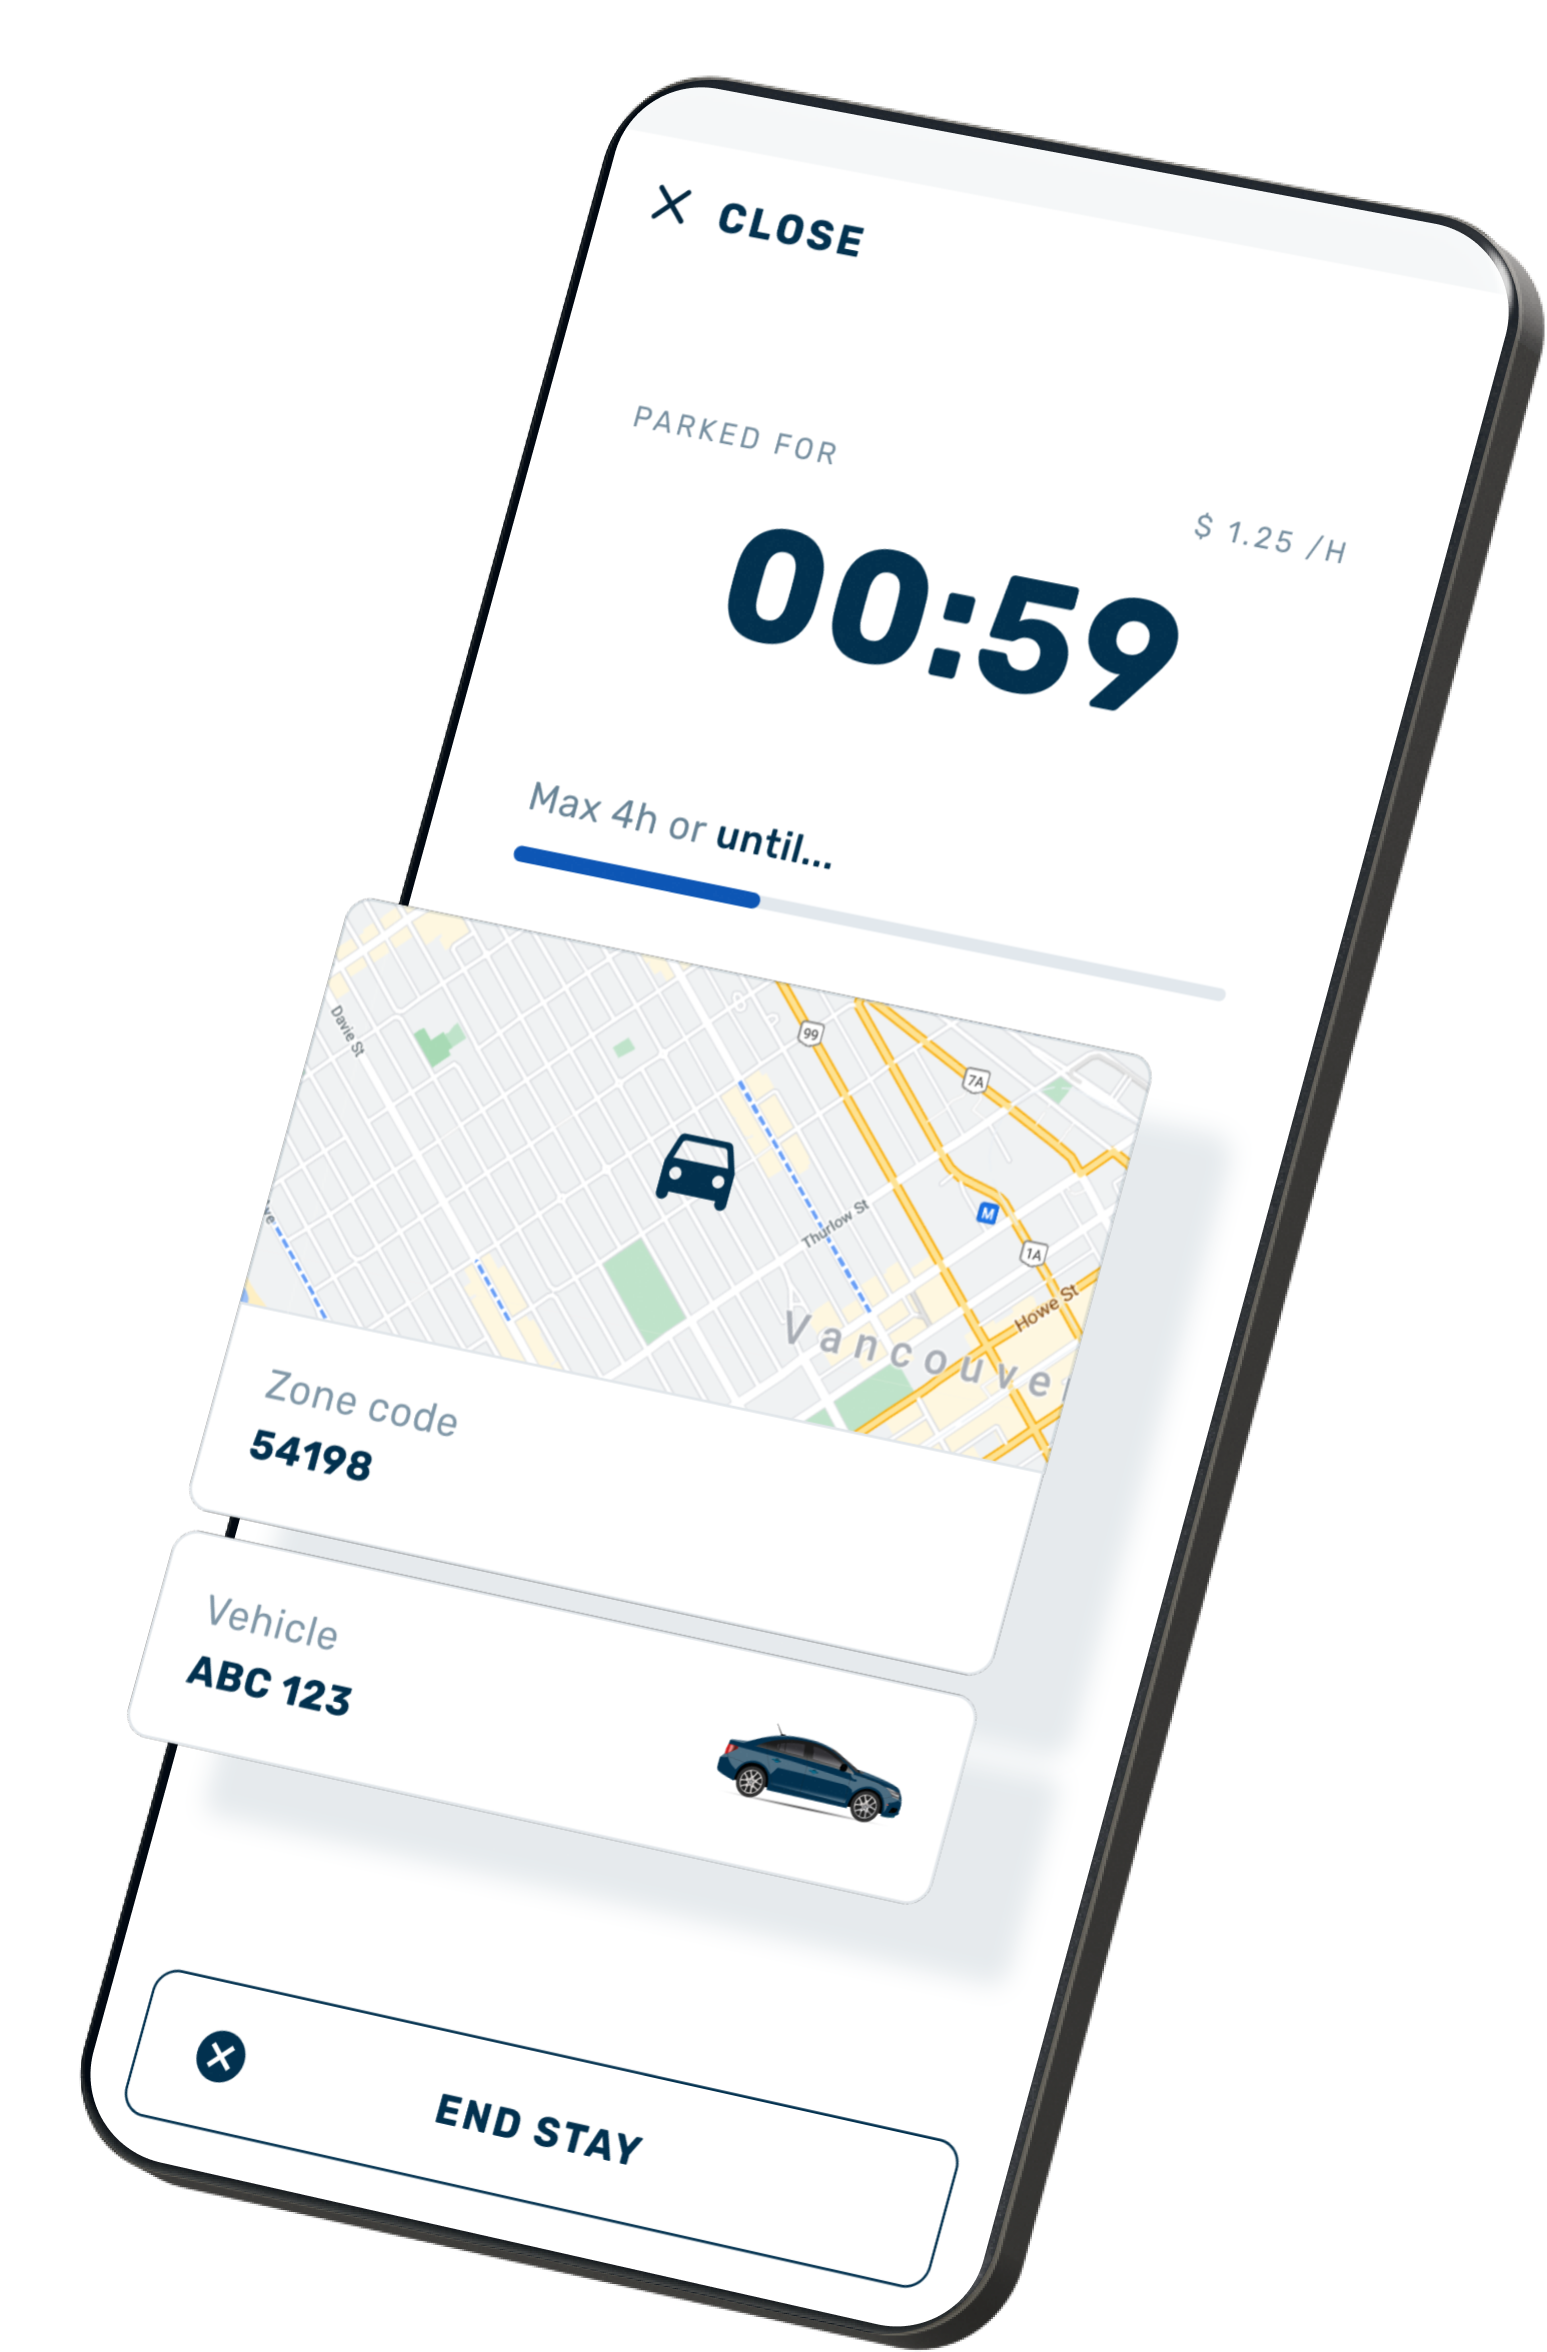 The Virtual Parking App allows Customers to pay for parking from their phones.